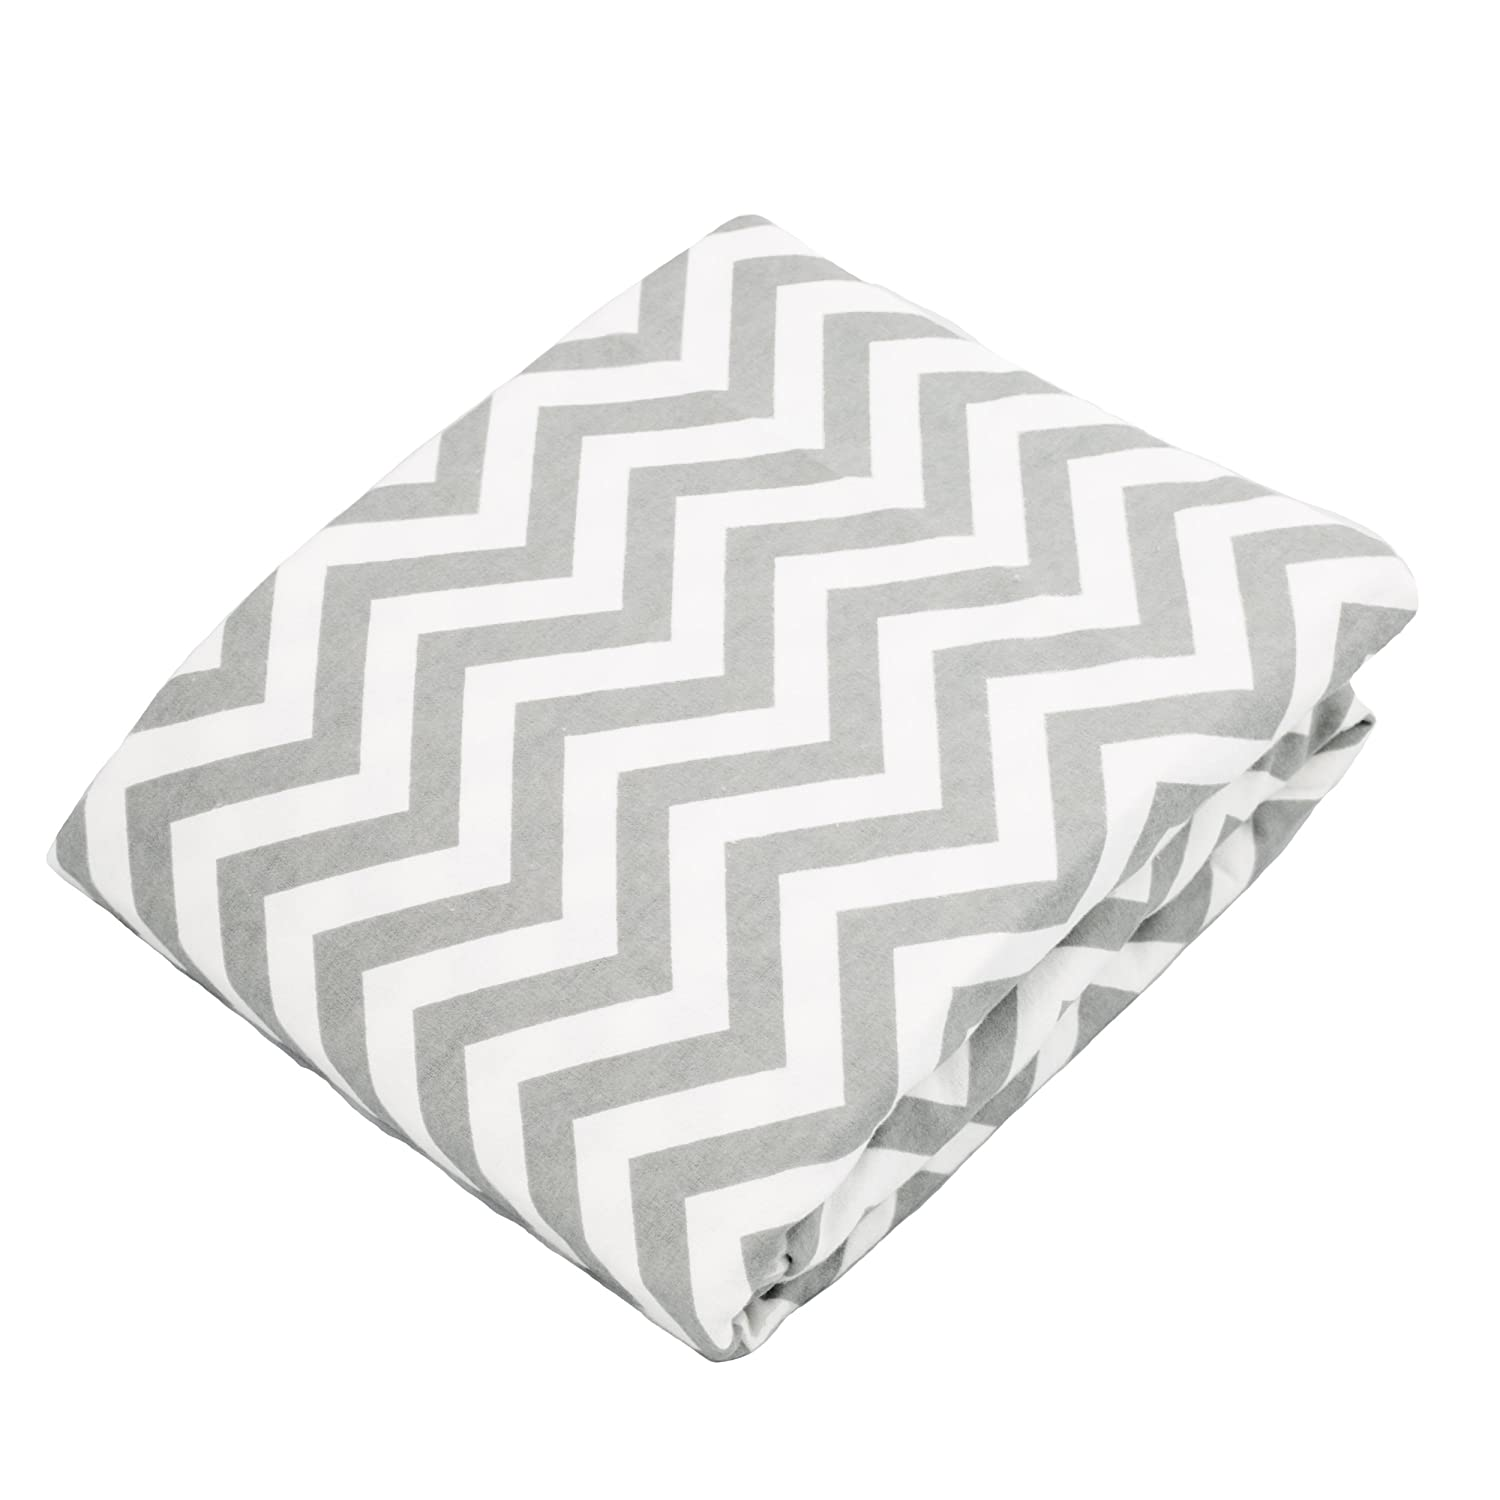 Kushies Changing Pad Cover for 1 pad, 100% breathable cotton, Made in Canada, Grey Chevron Kushies Baby S340-507